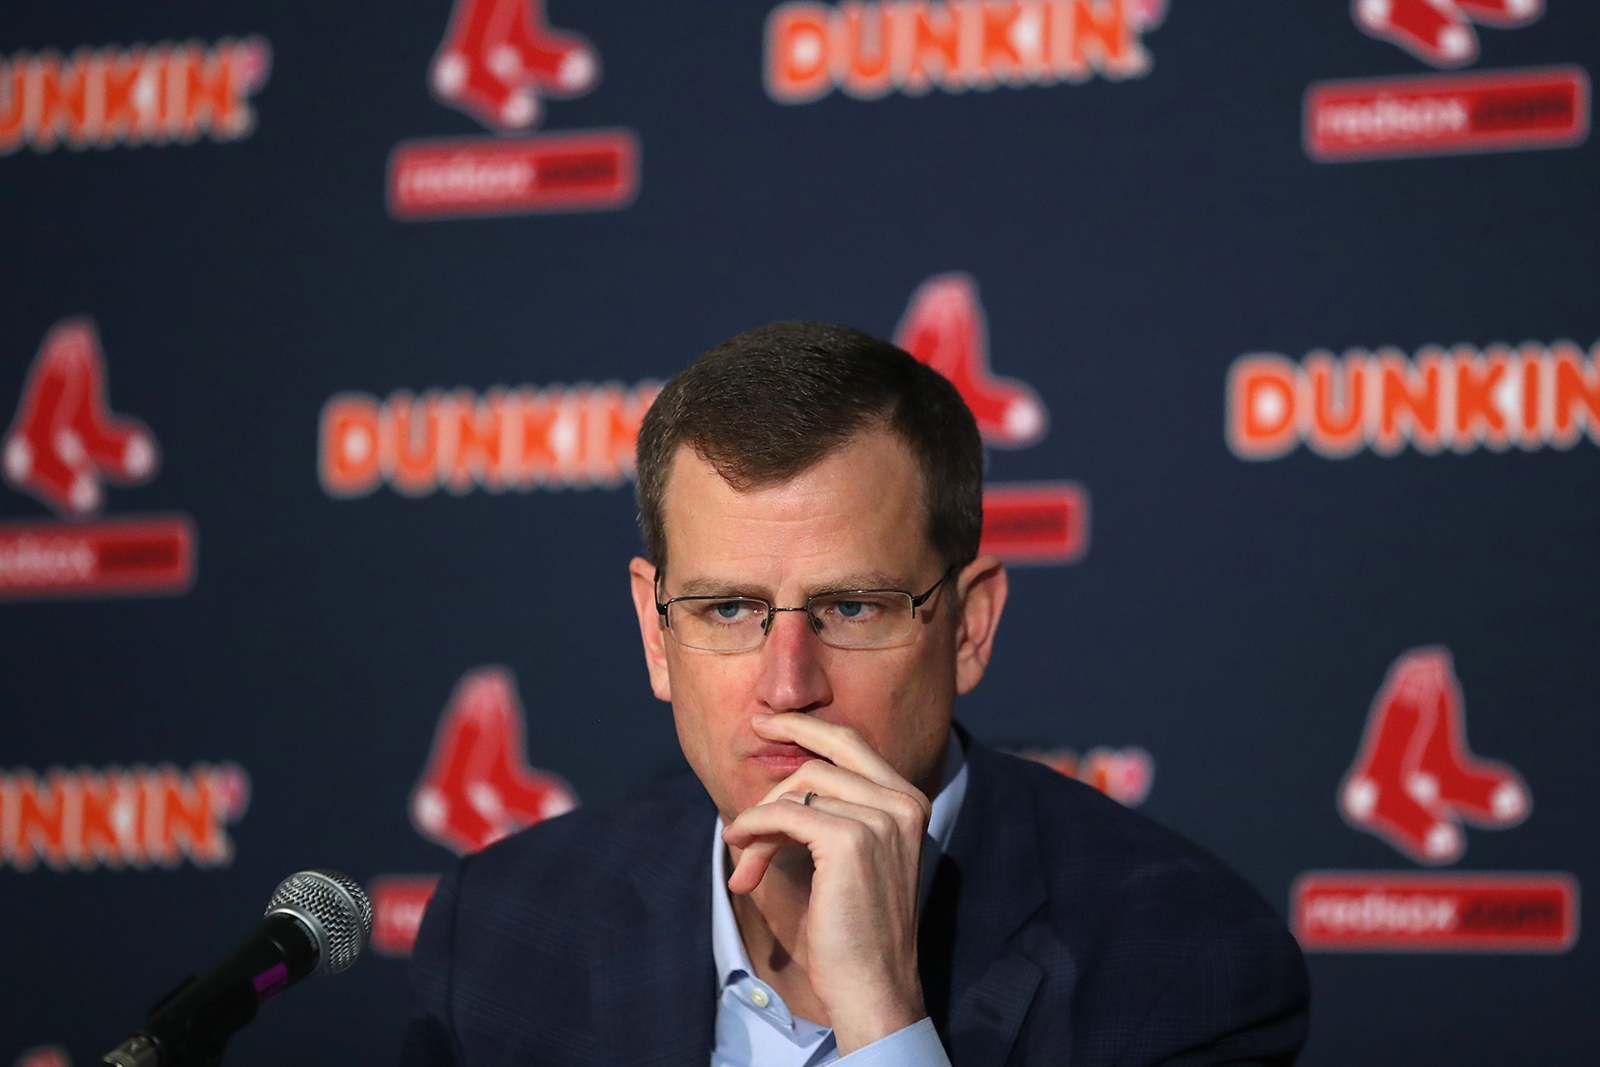 Red Sox CEO Sam Kennedy looks on during a news conference on January 15, in Boston, Massachusetts.